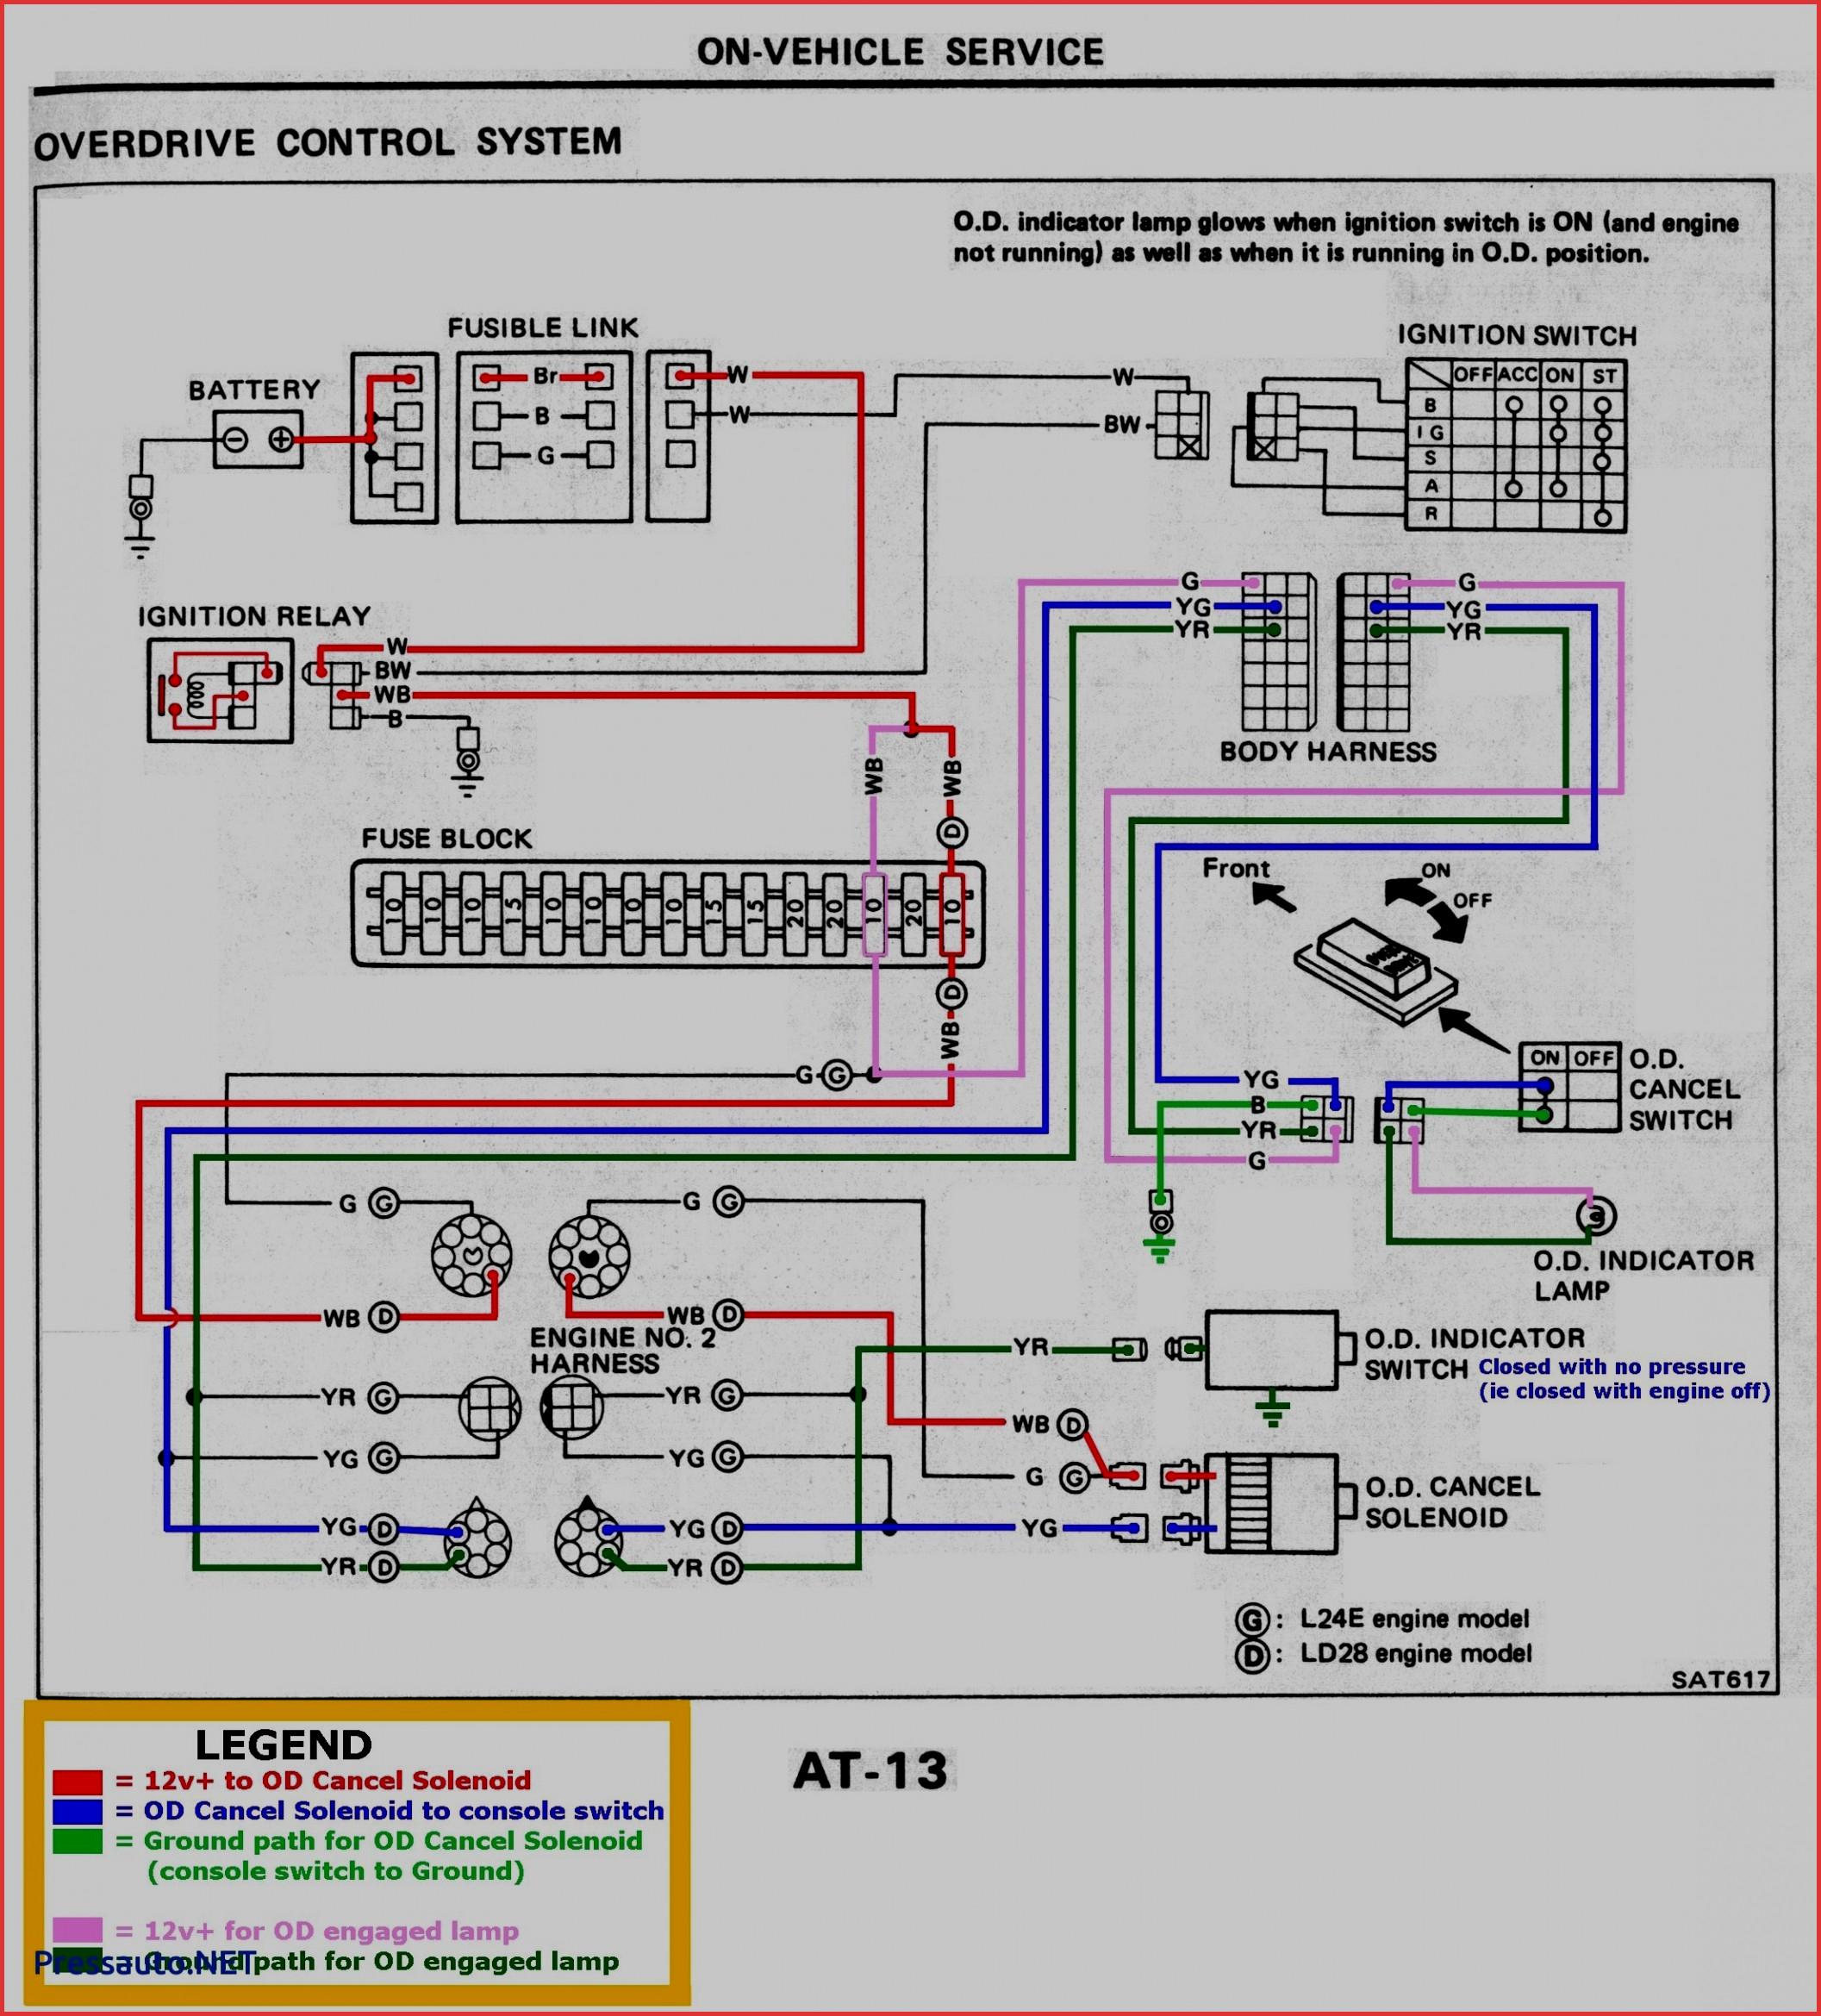 Uk Outlet Diagrams - Trusted Wiring Diagram - Gfci Outlet Wiring Diagram